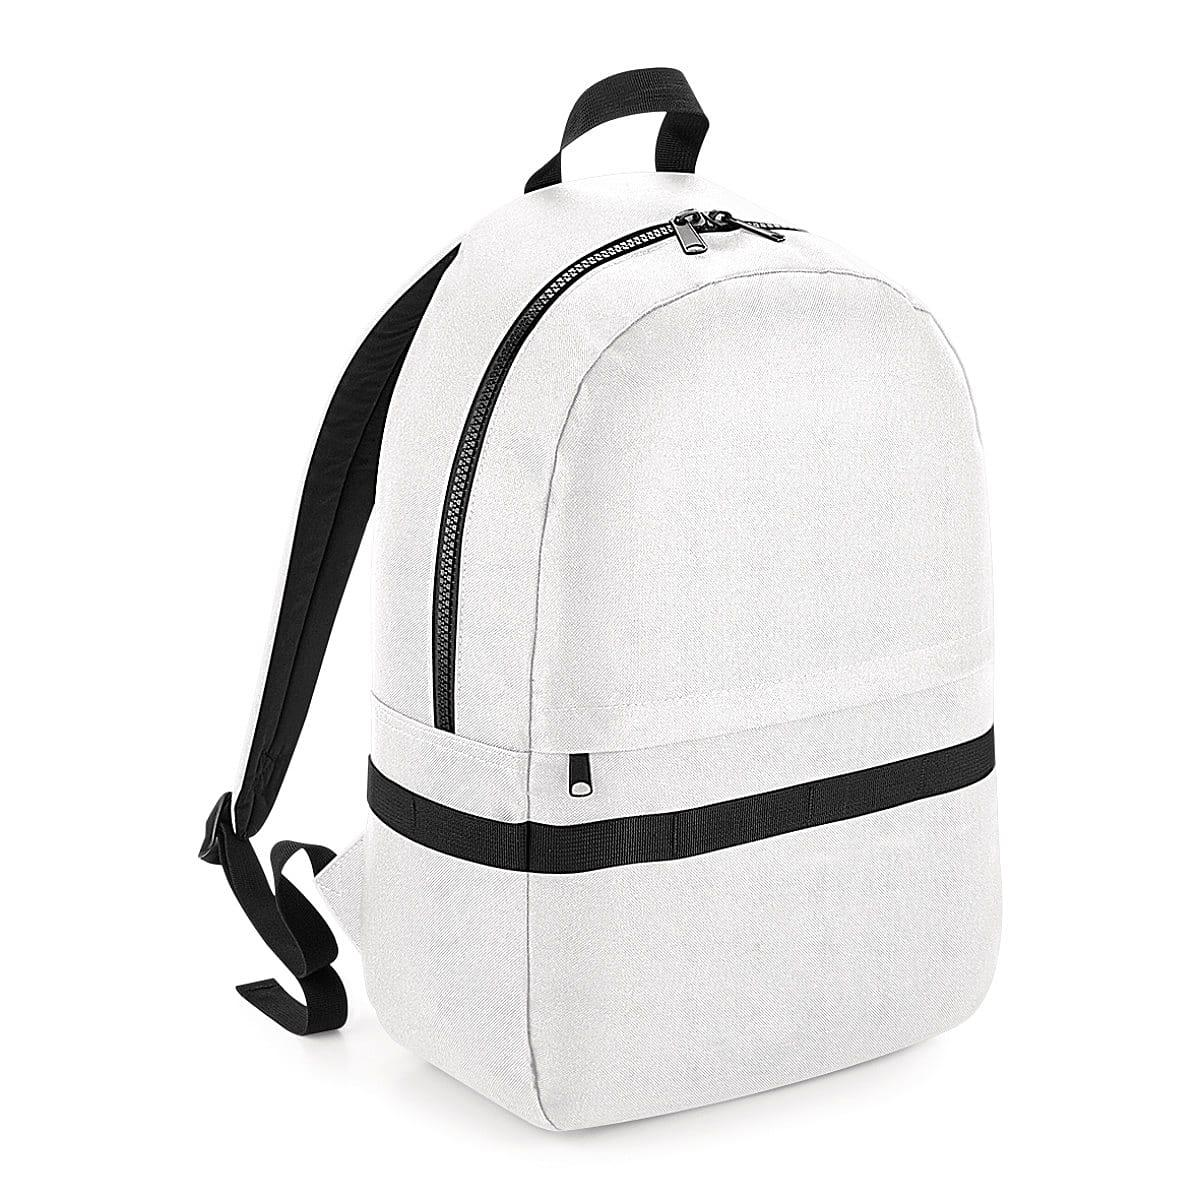 Bagbase Modulr 20 Litre Backpack in White (Product Code: BG240)